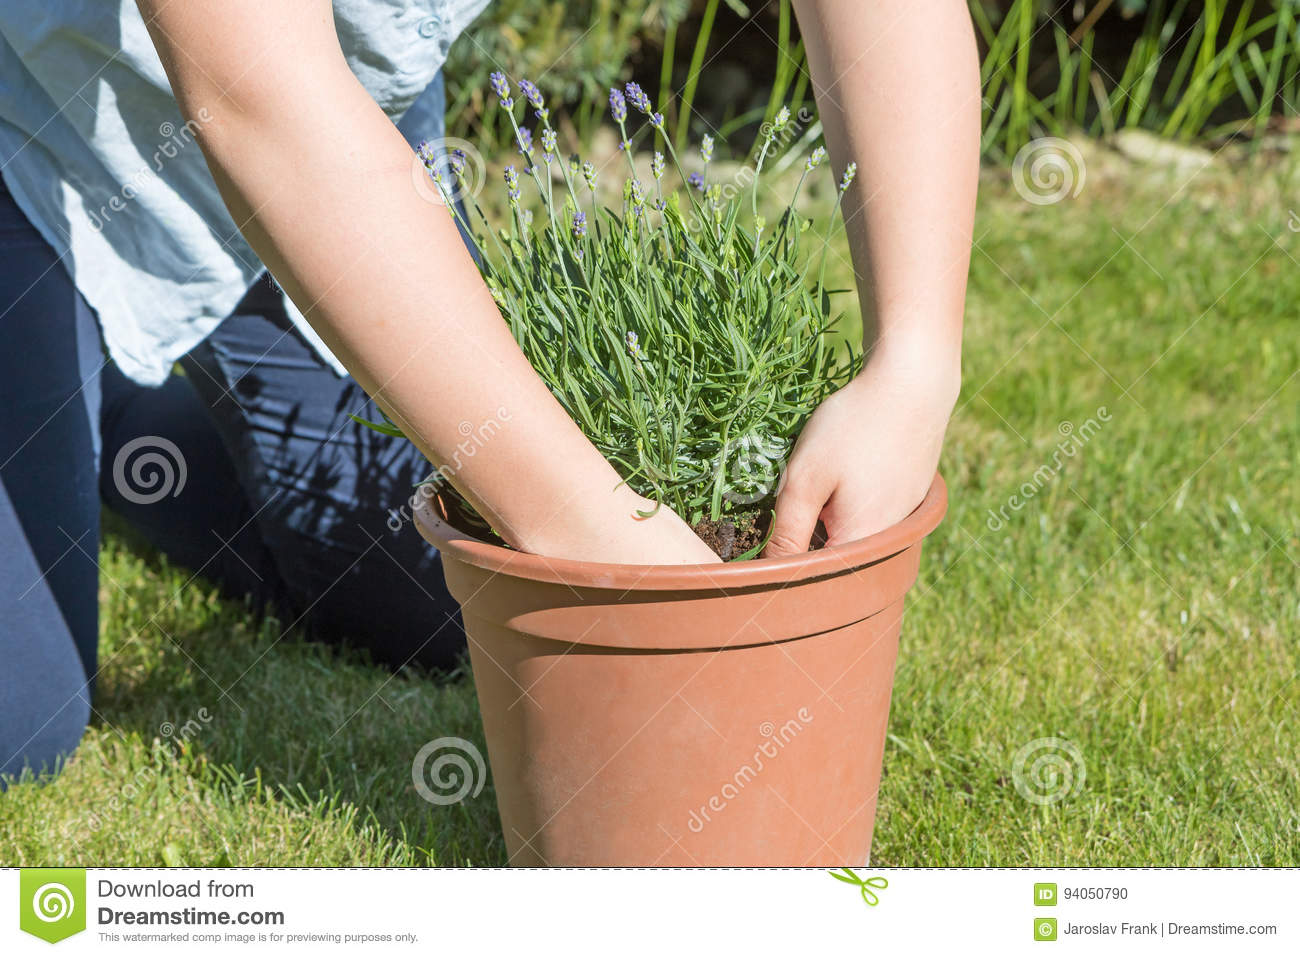 The girl is planting lavender in the pot